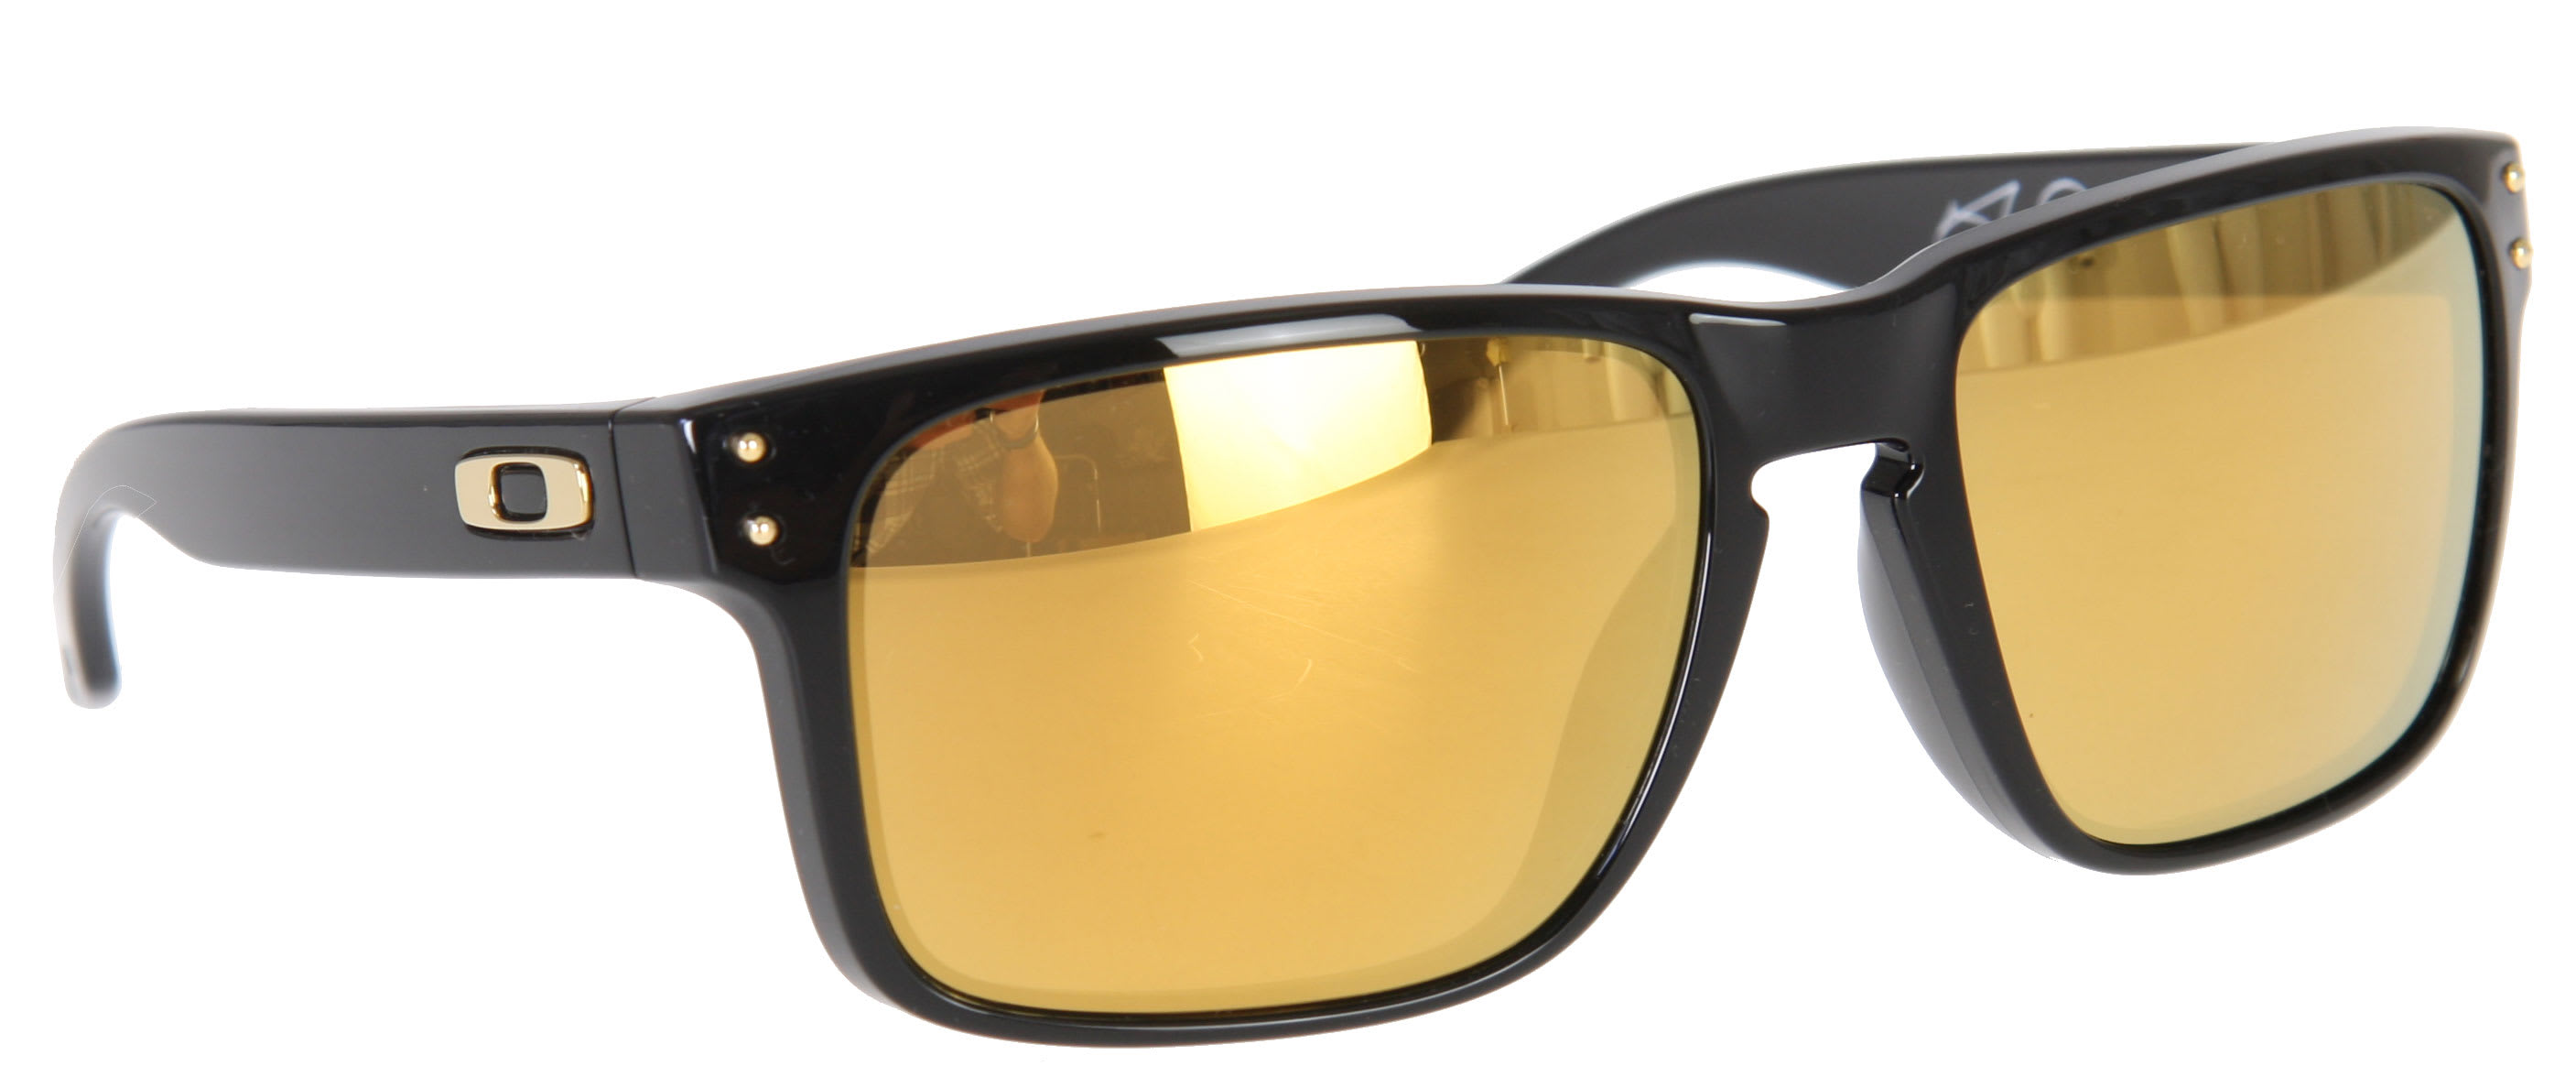 Holbrook Polarized Sunglasses  on oakley holbrook shaun white sunglasses